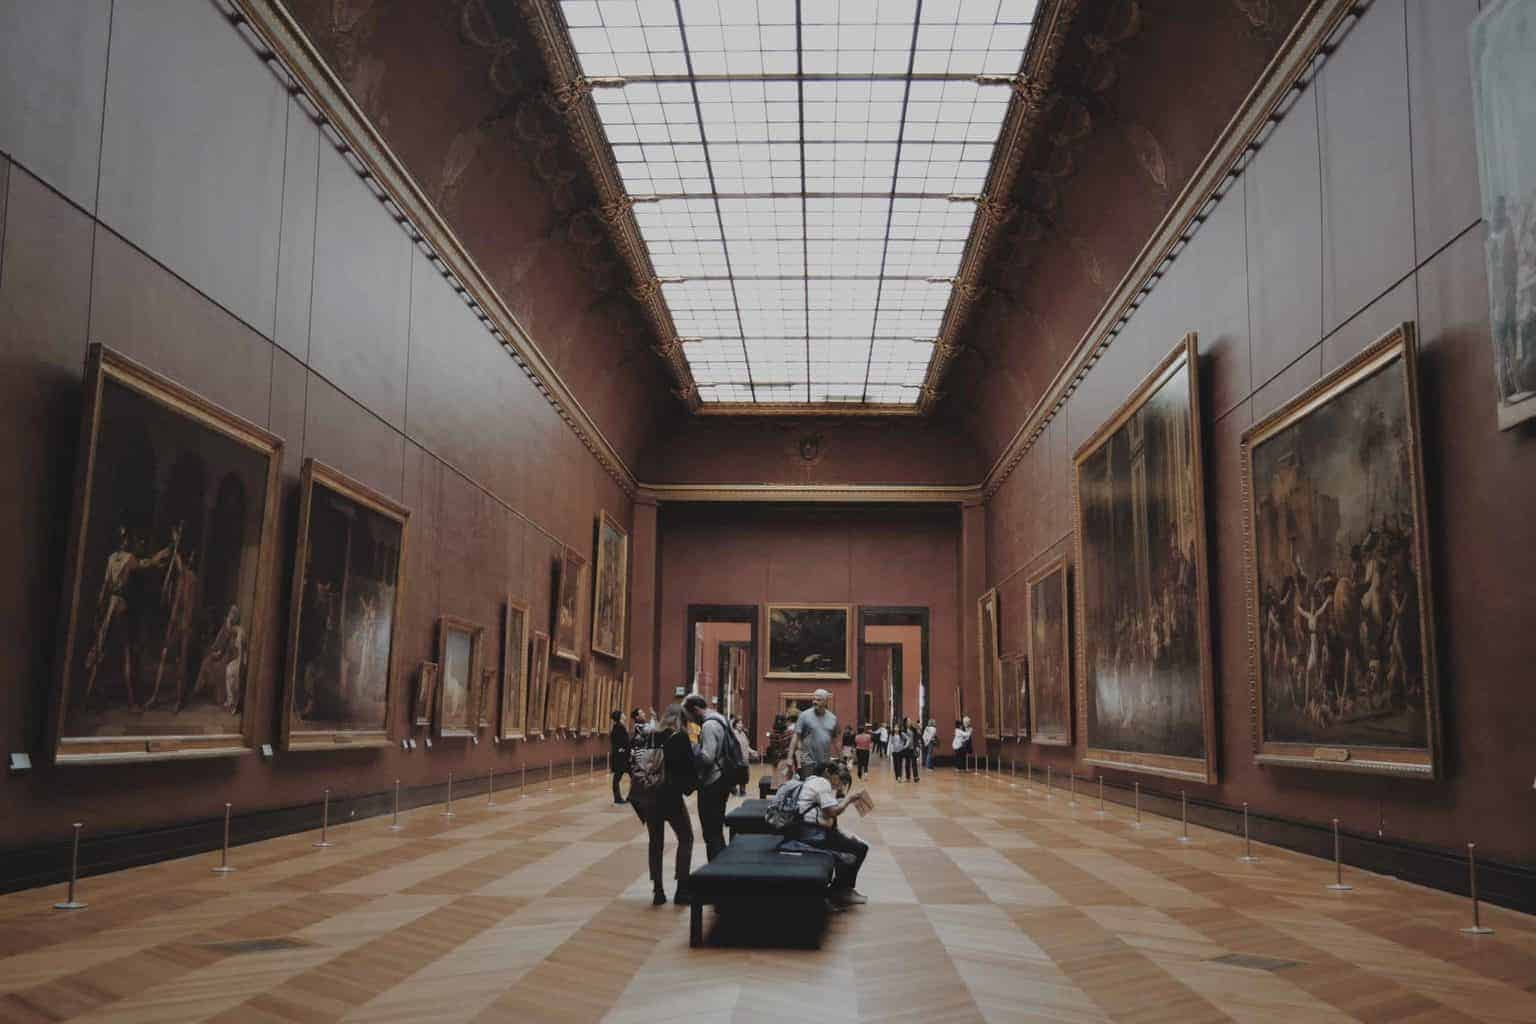 Inside of a museum